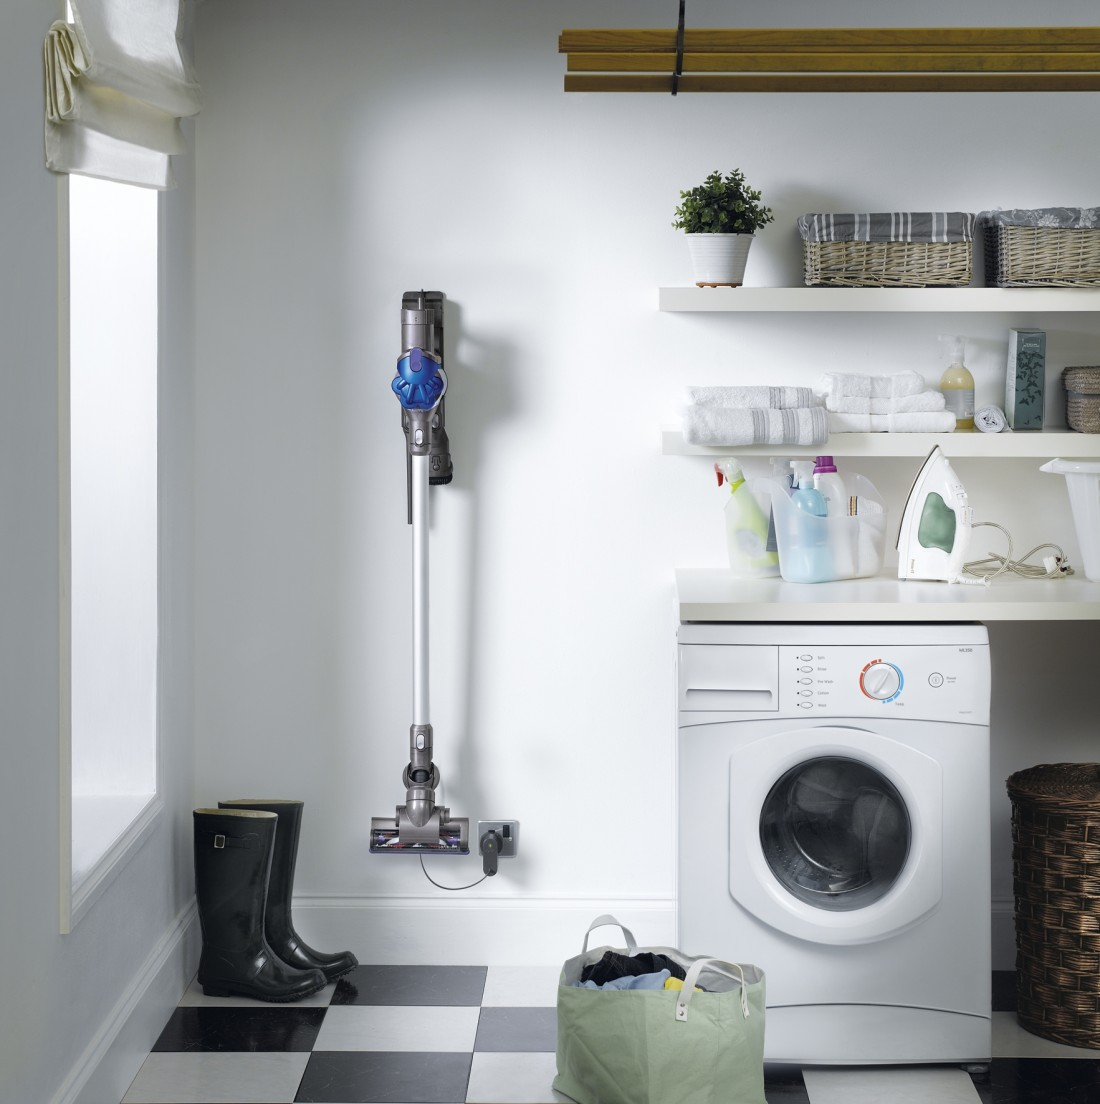 Dyson Digital Slim in pantry